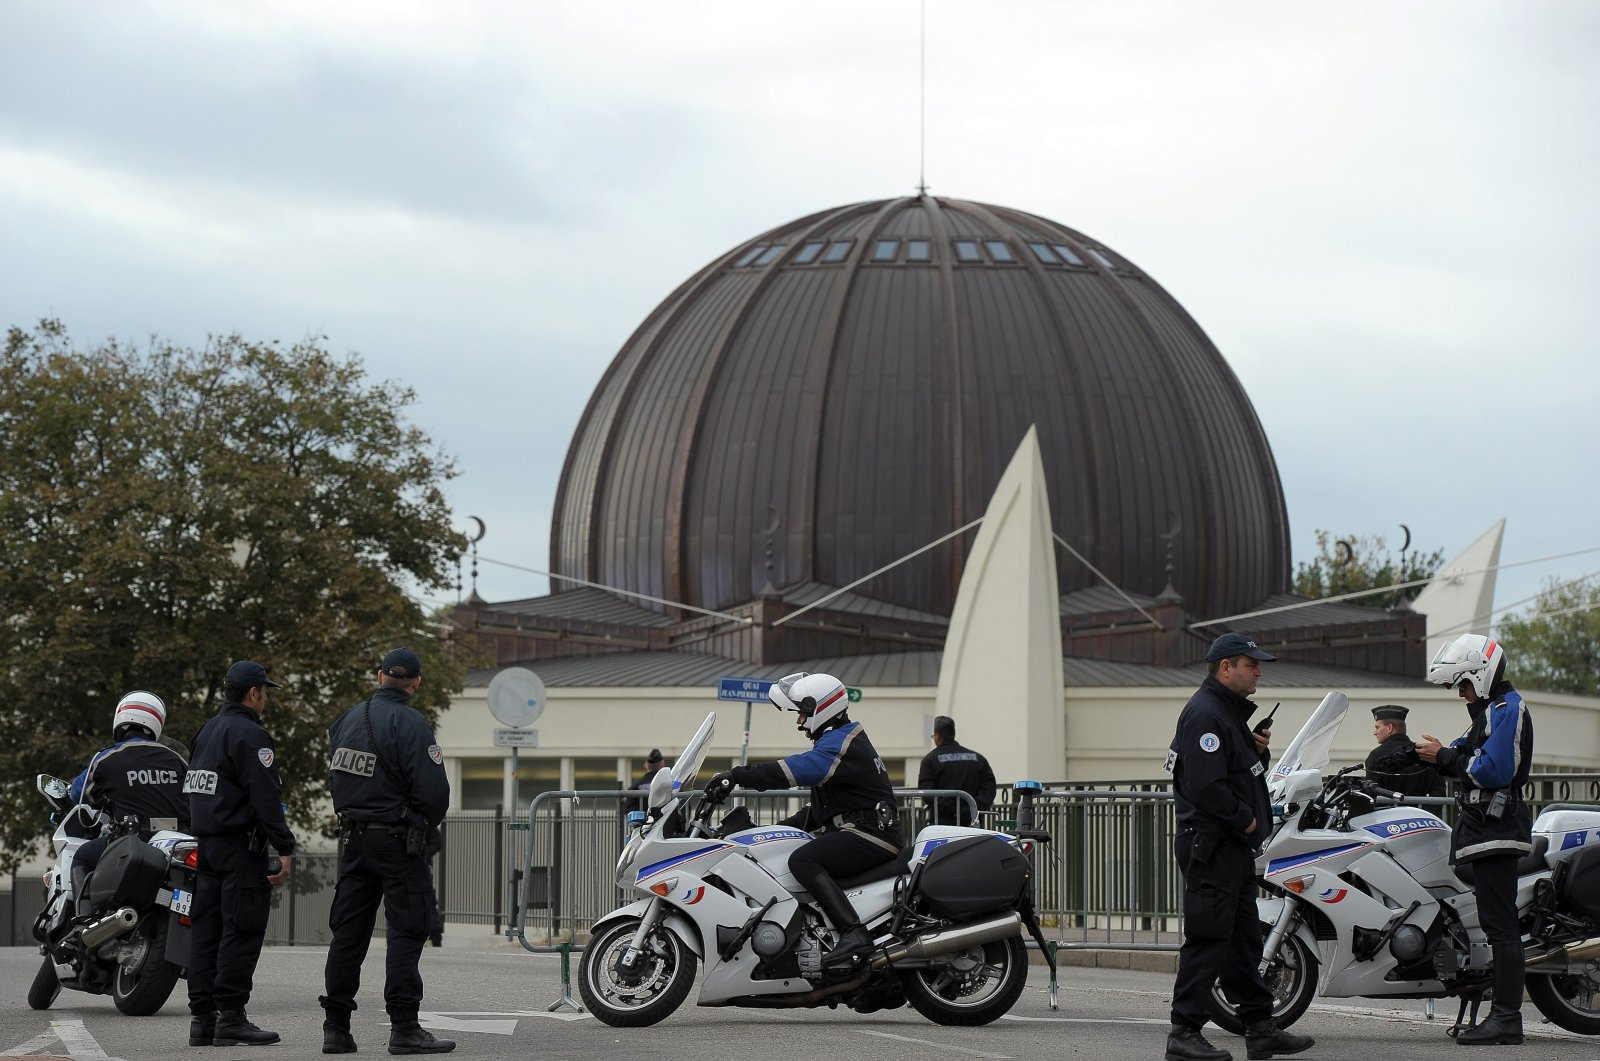 Police officers patrol in front of the Strasbourg Grand Mosque after its inauguration, Strasbourg, France, Sept. 27, 2012. (AFP Photo)